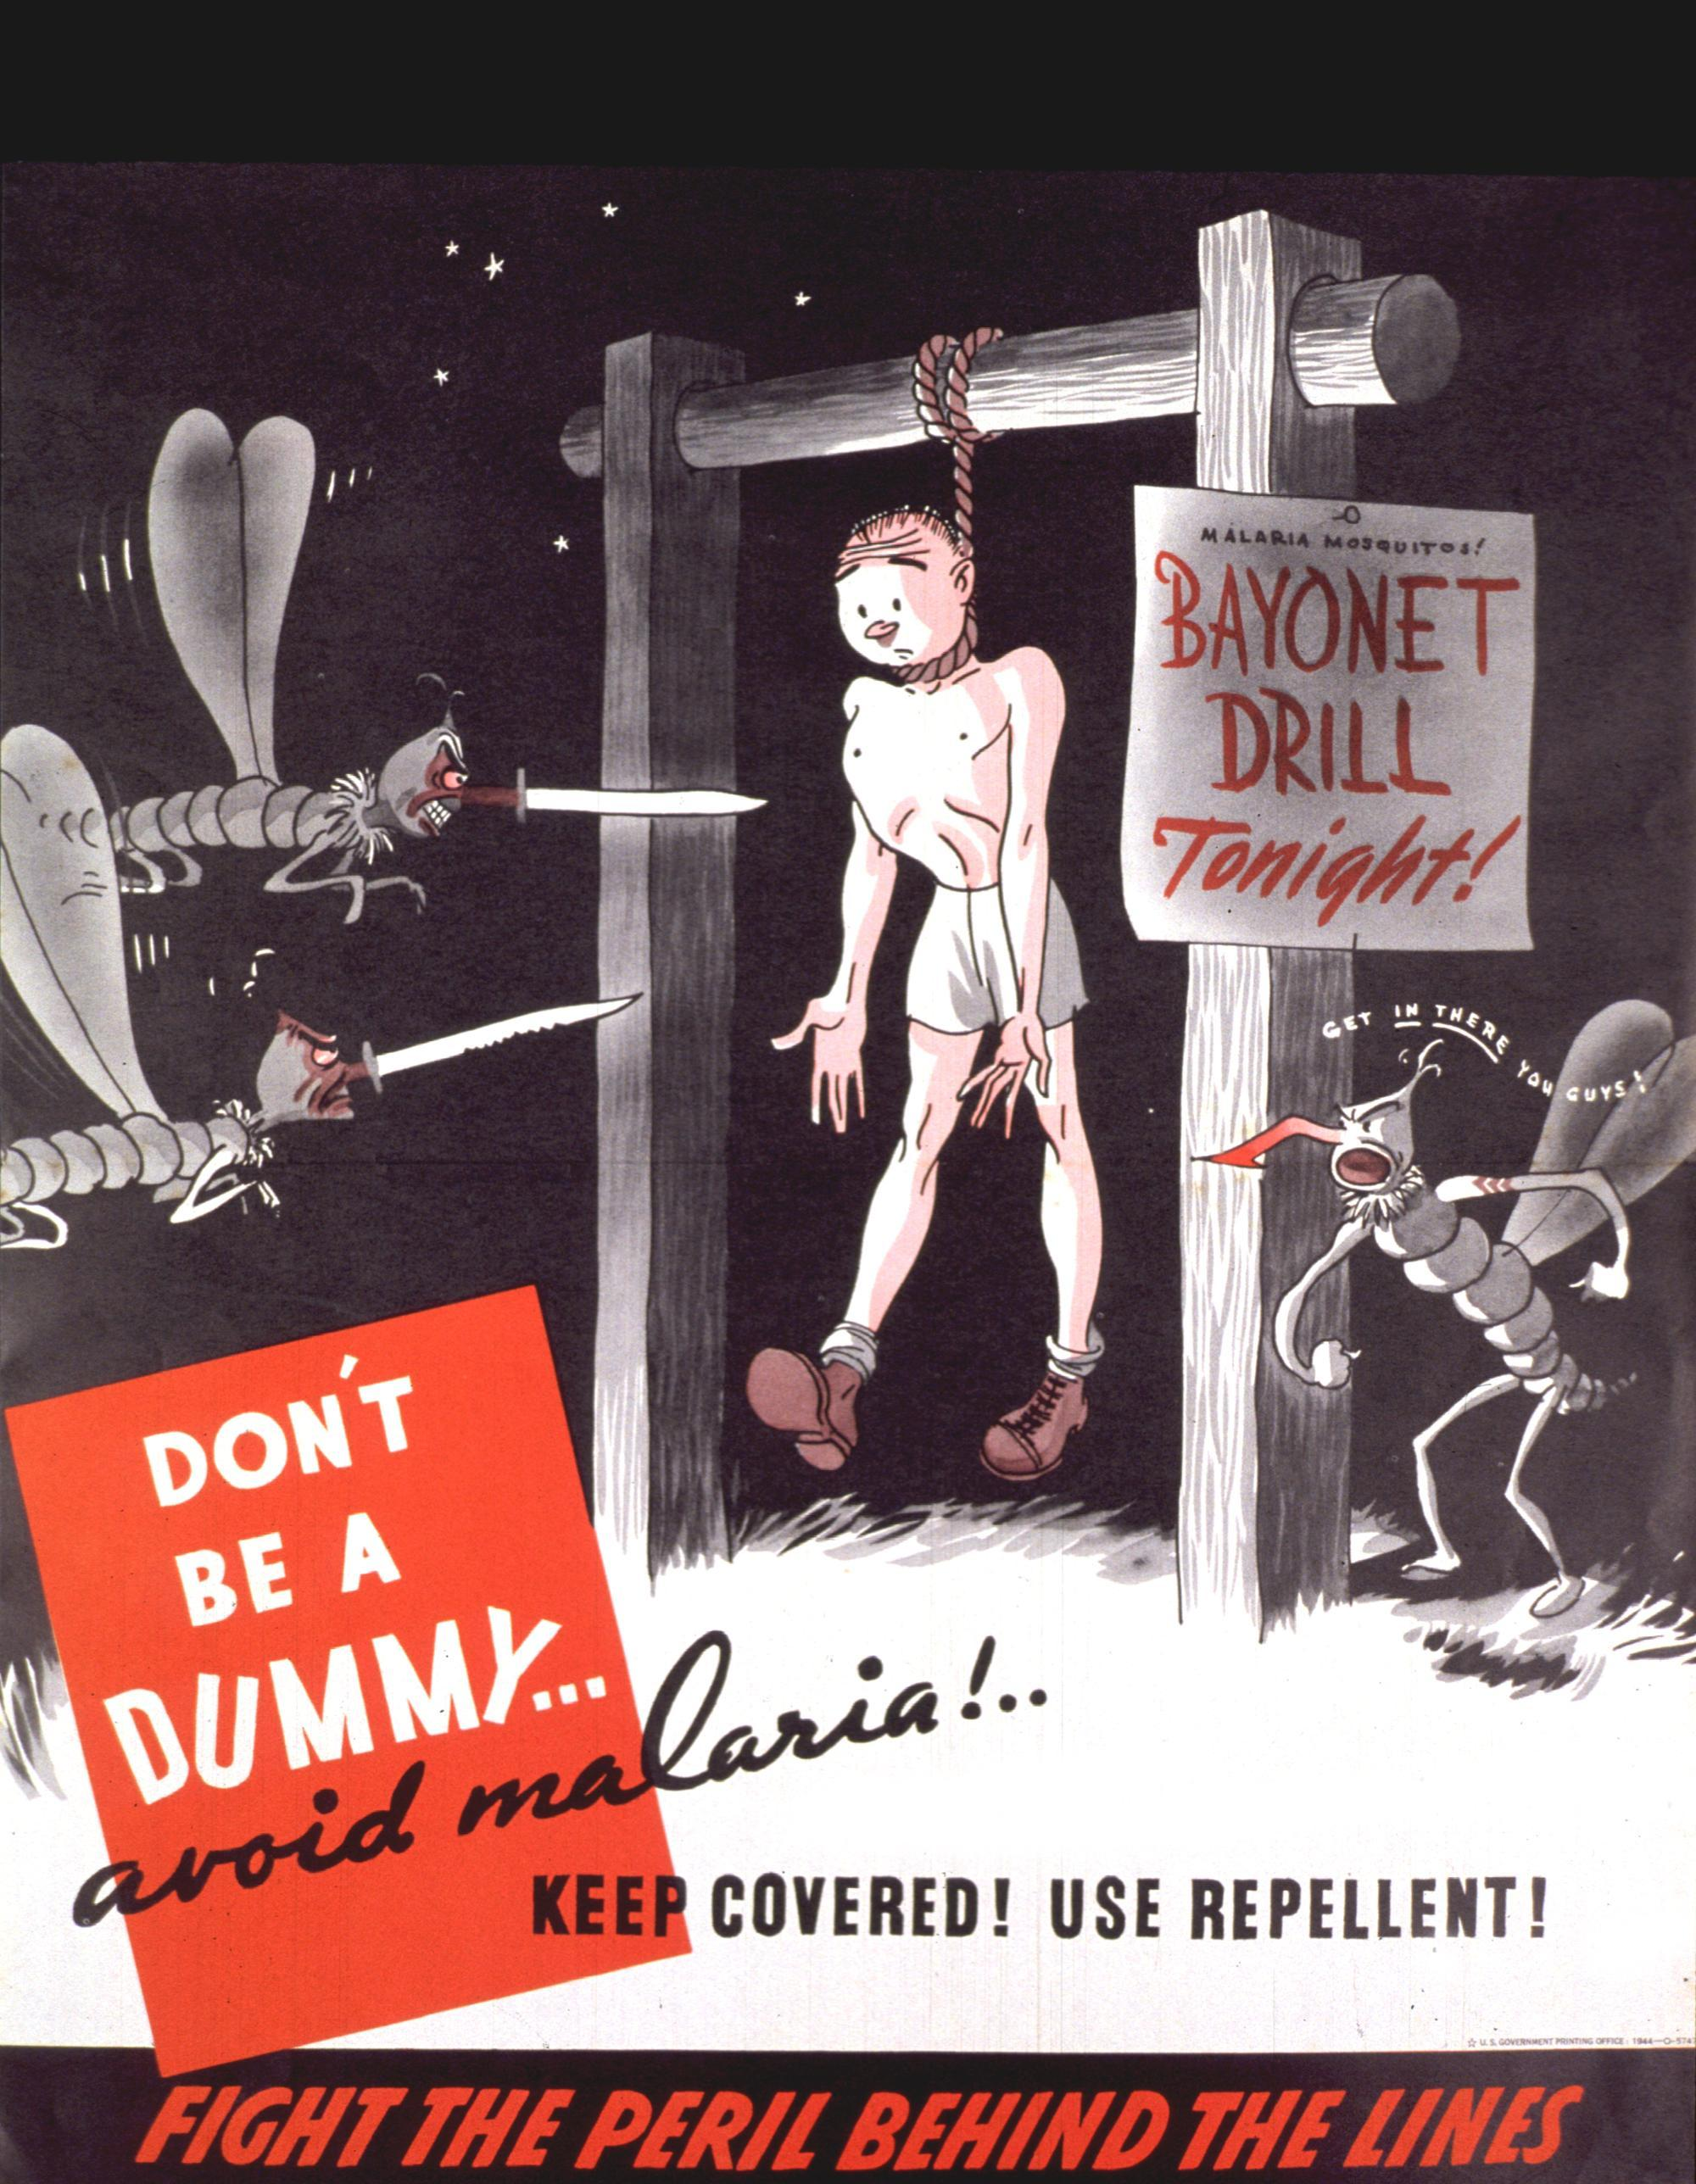 "Don't be a dummy... avoid malaria!... keep covered! use repellent! Contributor (Organization): United States Government Printing Office. Publication Date: 1944 Physical Description: 1 photomechanical print (poster) : col. ; 44 x 36 cm. Image Description: Black, white, and red poster. Visual image is an illustration of a soldier hanging from a cross bar, ready to be attacked by two angry-looking, cartoon-character mosquitos. A sign hangs on the cross-bar post reading ""bayonet drill tonight"" and a third mosquito urges the other two on. Title near lower left corner. Publisher information near lower right corner. Note at bottom of poster."